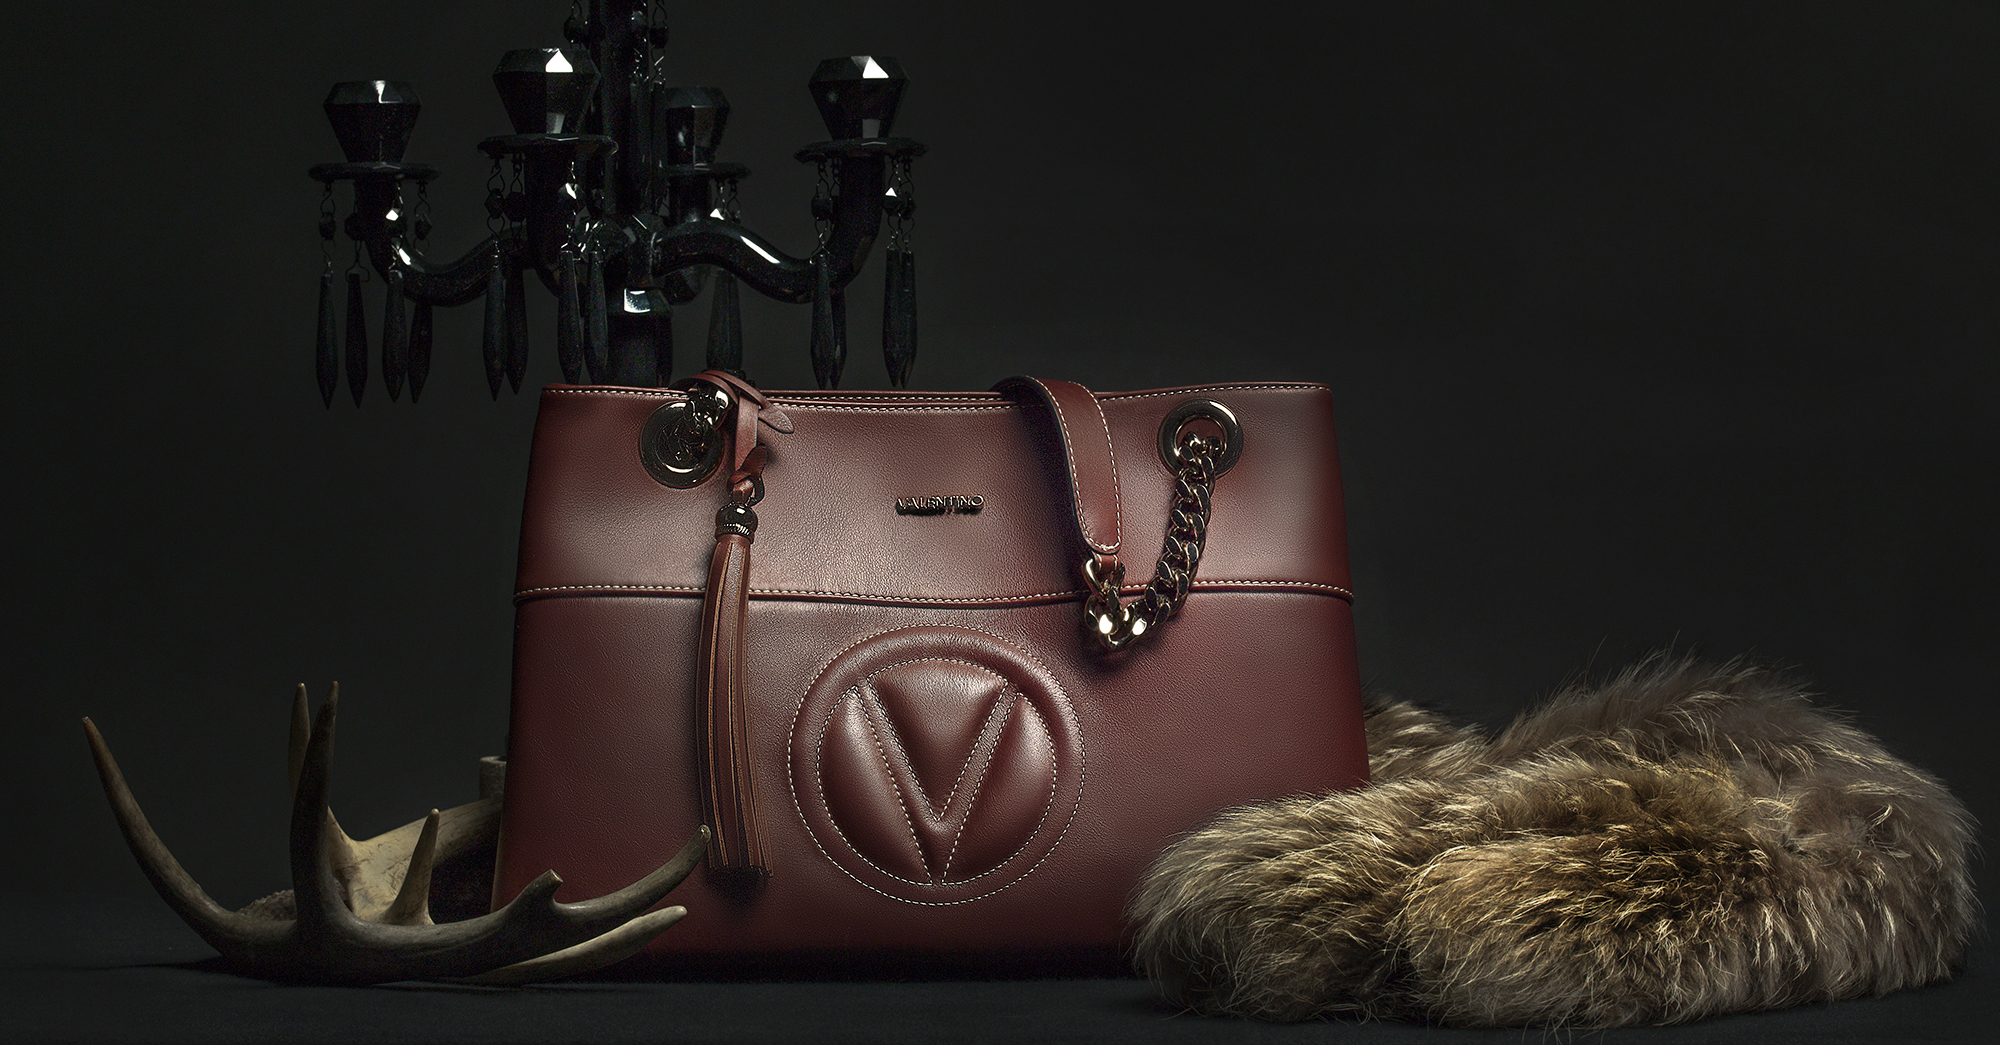 photo by Jodi Jones for Valentino handbags.